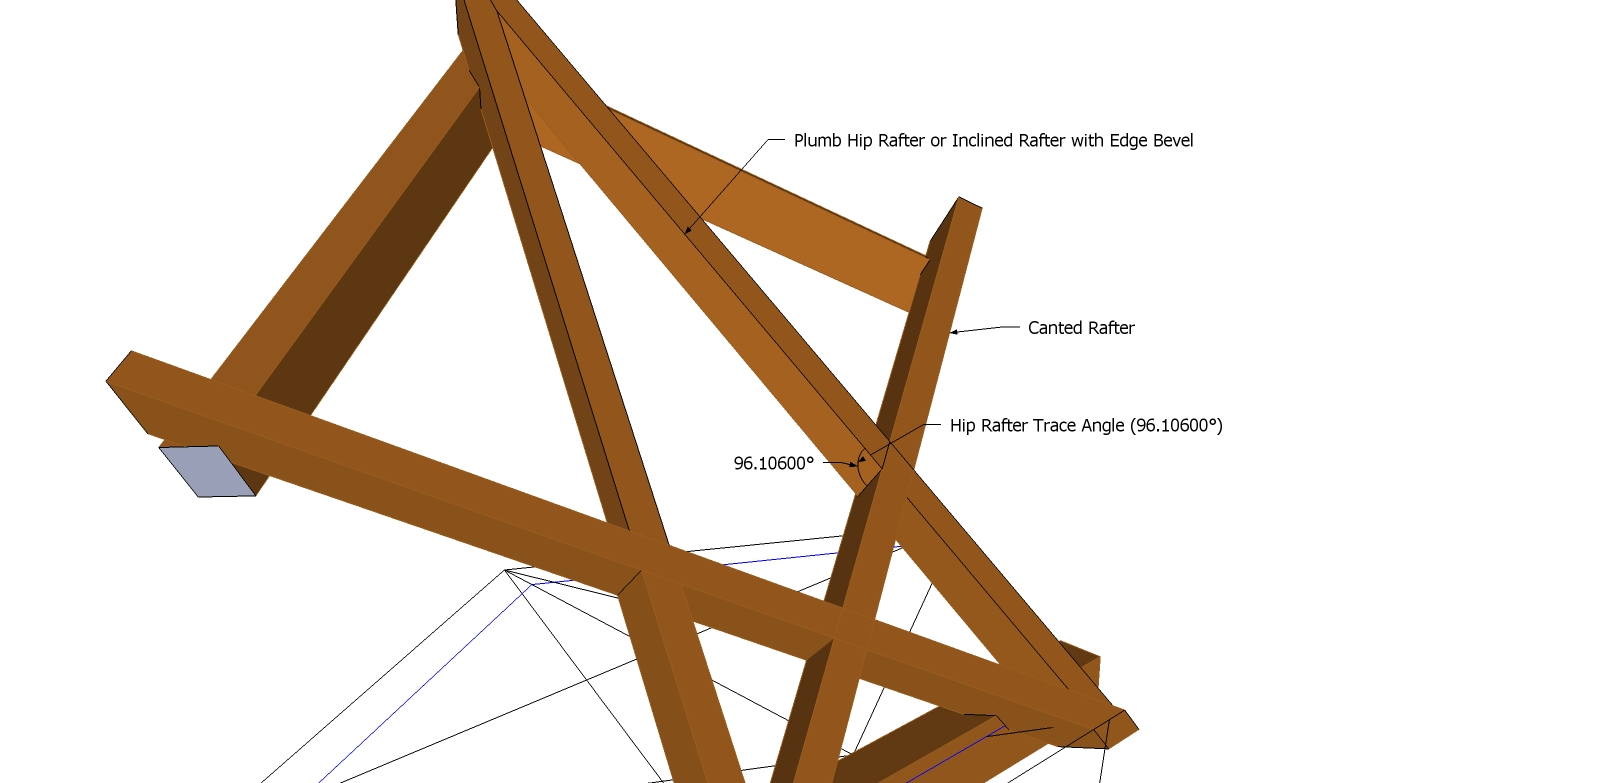 Roof Framing Geometry: Plumb Hip Rafter or Inclined Rafter with Edge ...